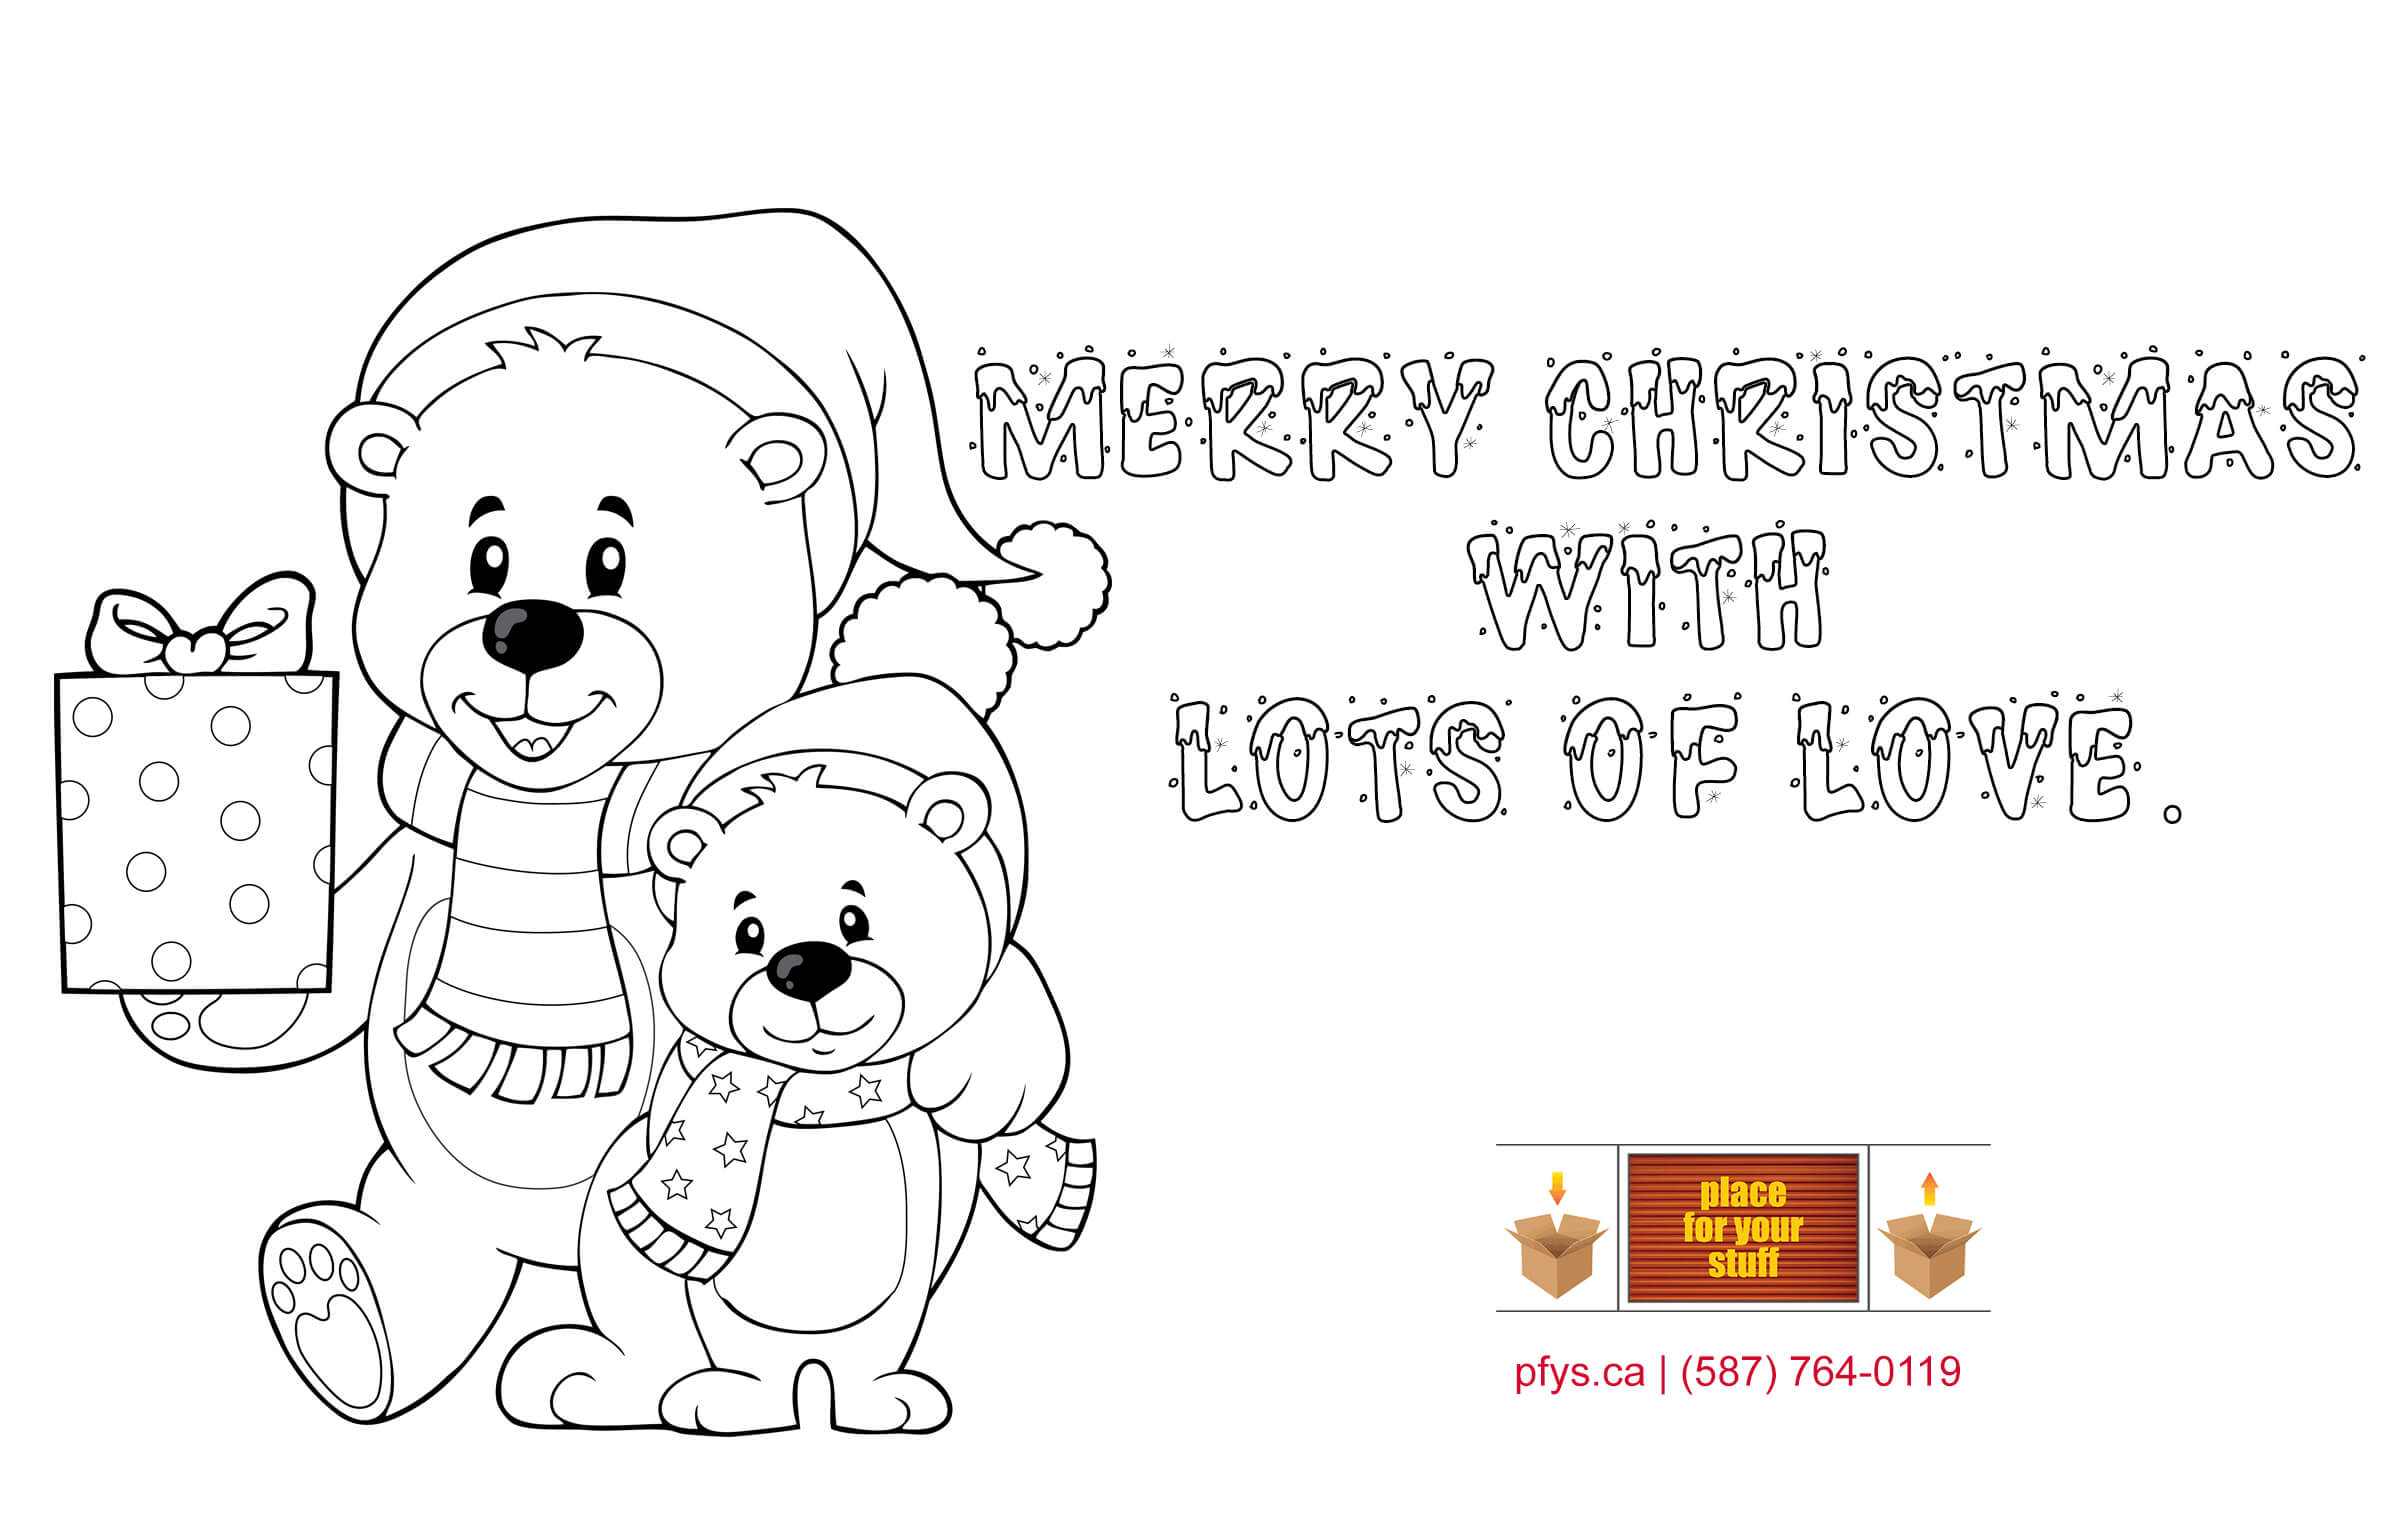 Place For Your Stuff's  Christmas coloring test.